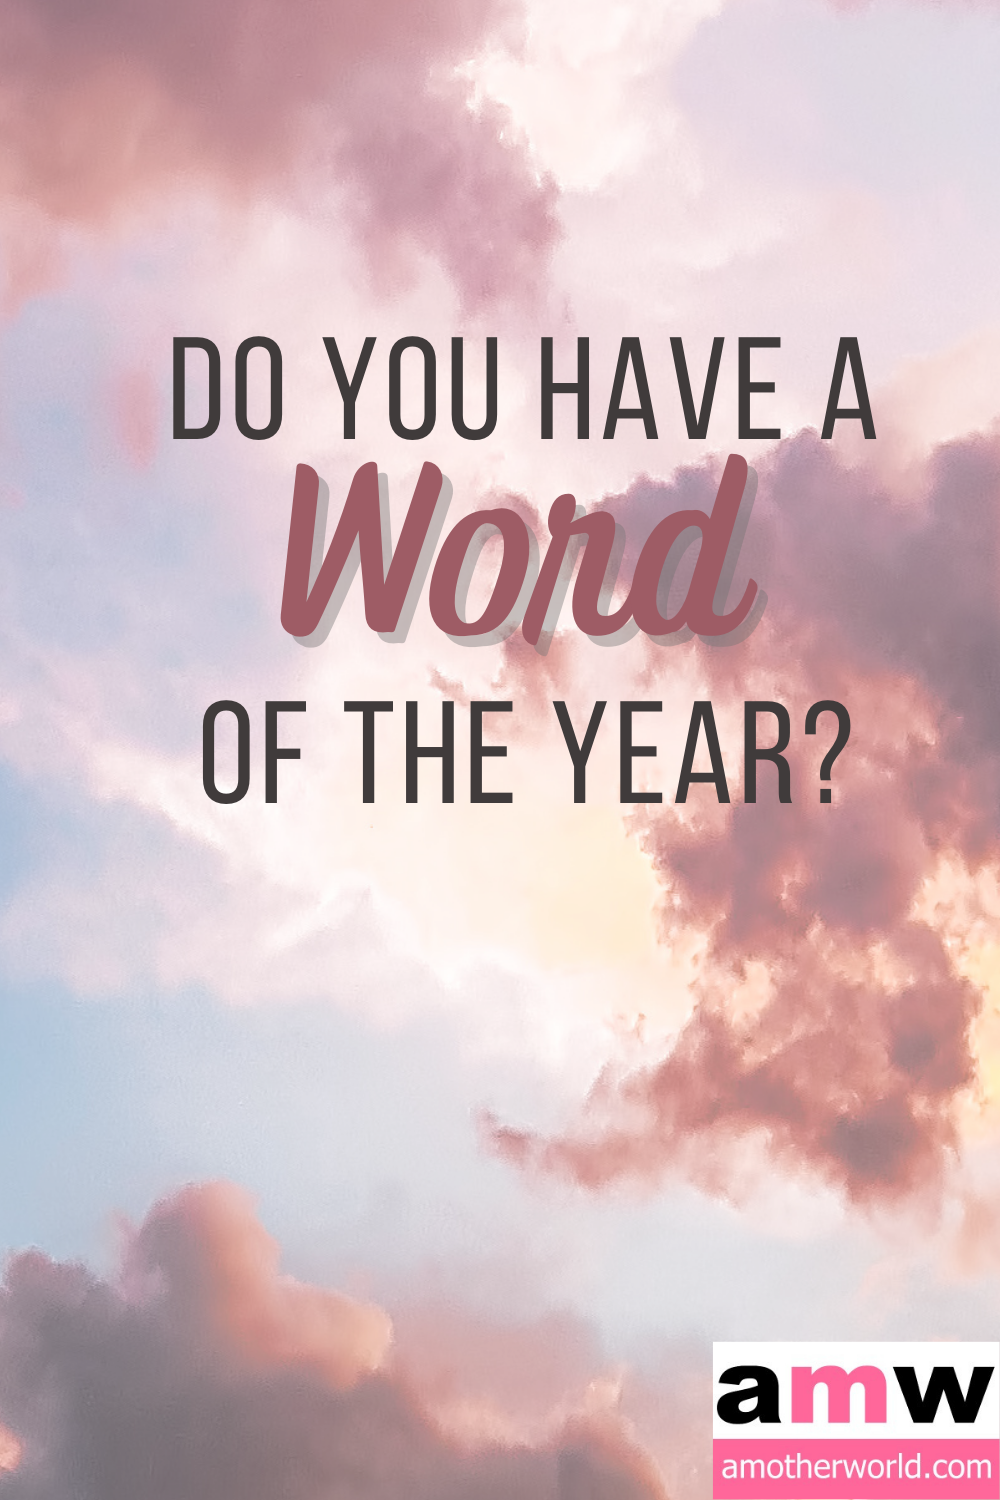 Do you have a word of the year? amotherworld.com